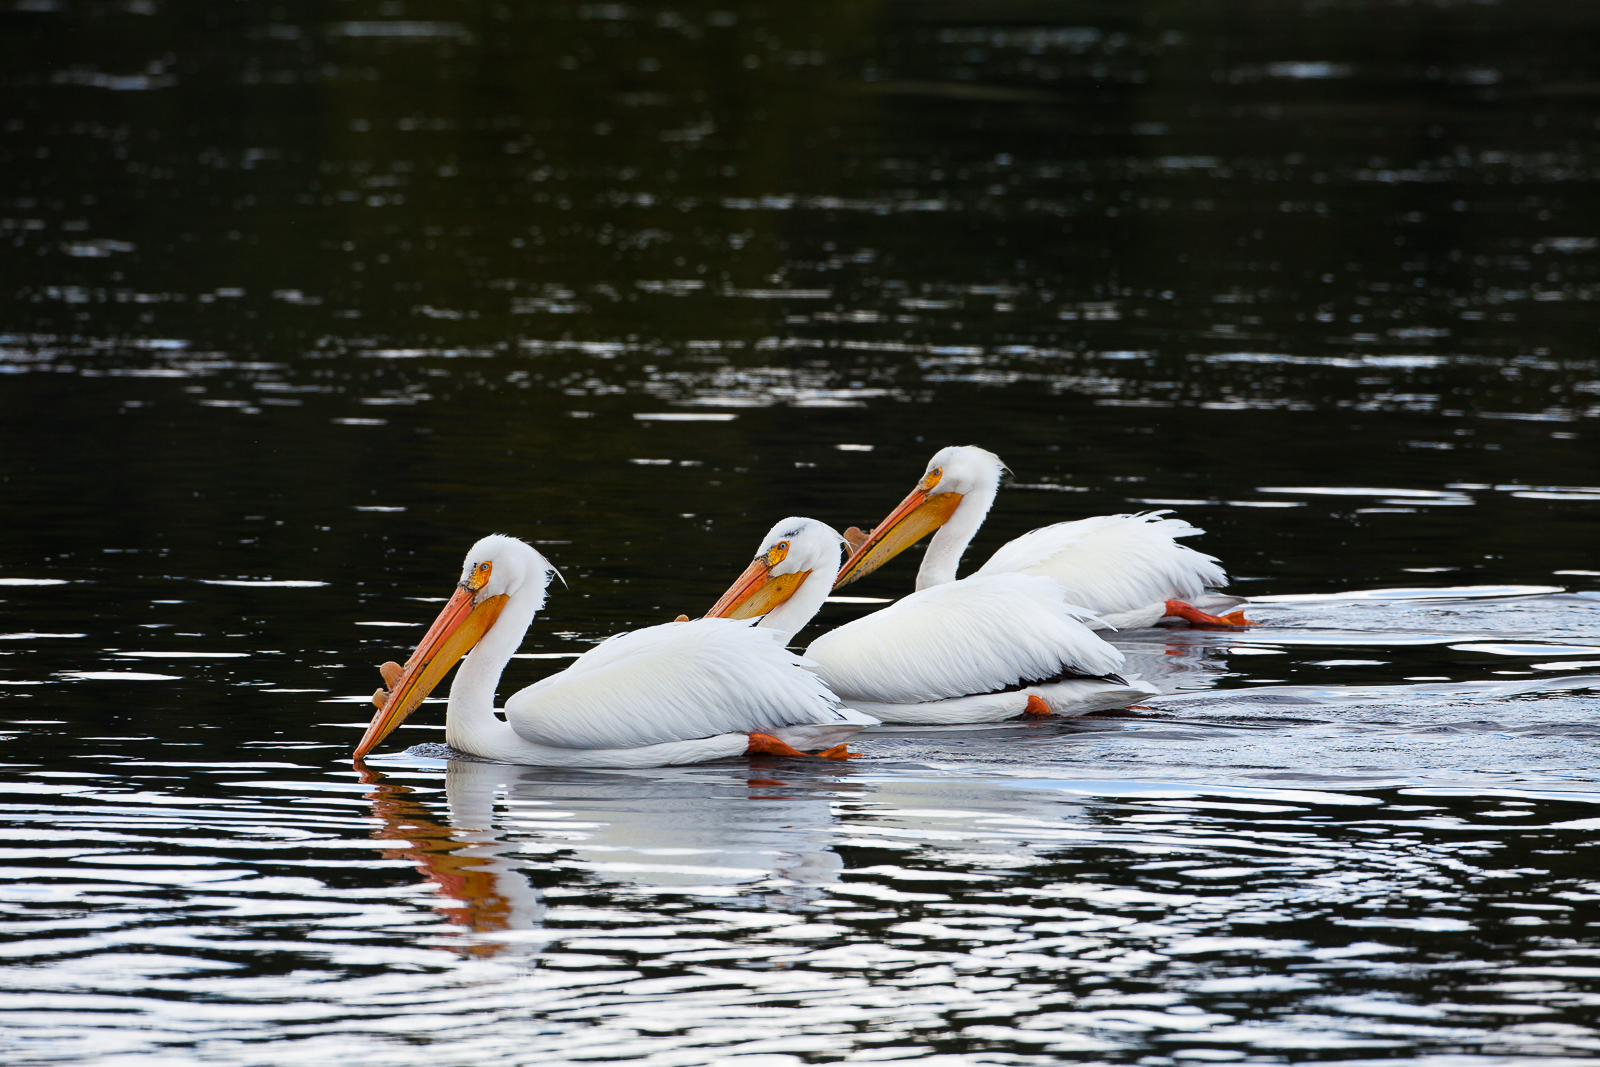 Swimming in unison these White Pelicans swim along the Yellowstone River looking for their next meal.